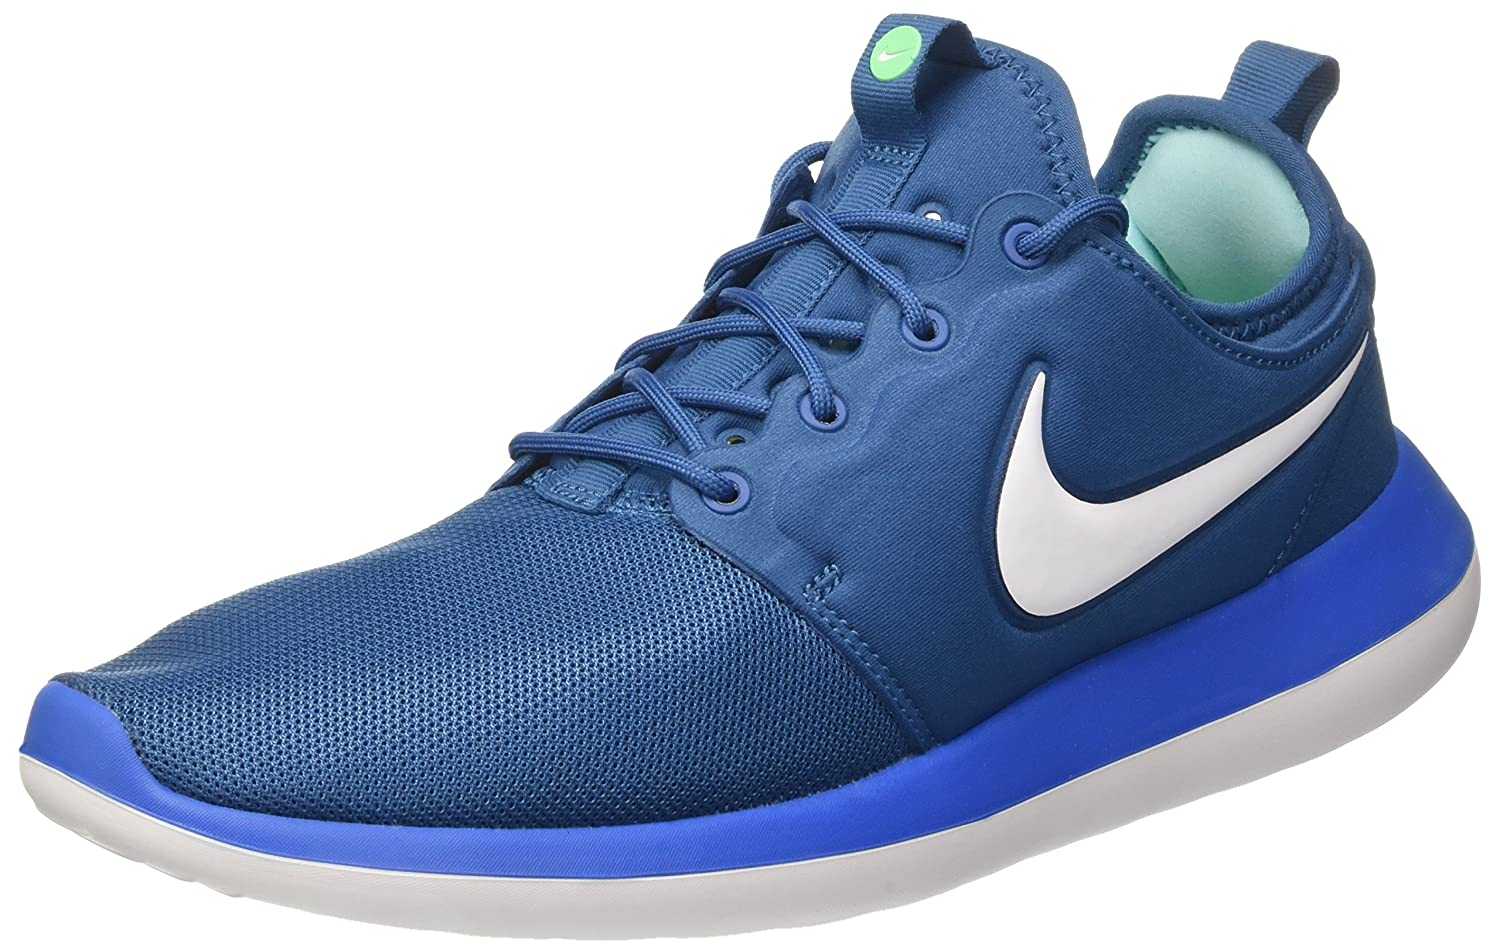 Nike Roshe Two, Zapatos para Correr para Hombre 43 EU|Azul (Industrial Blue/White/Photo Blue)